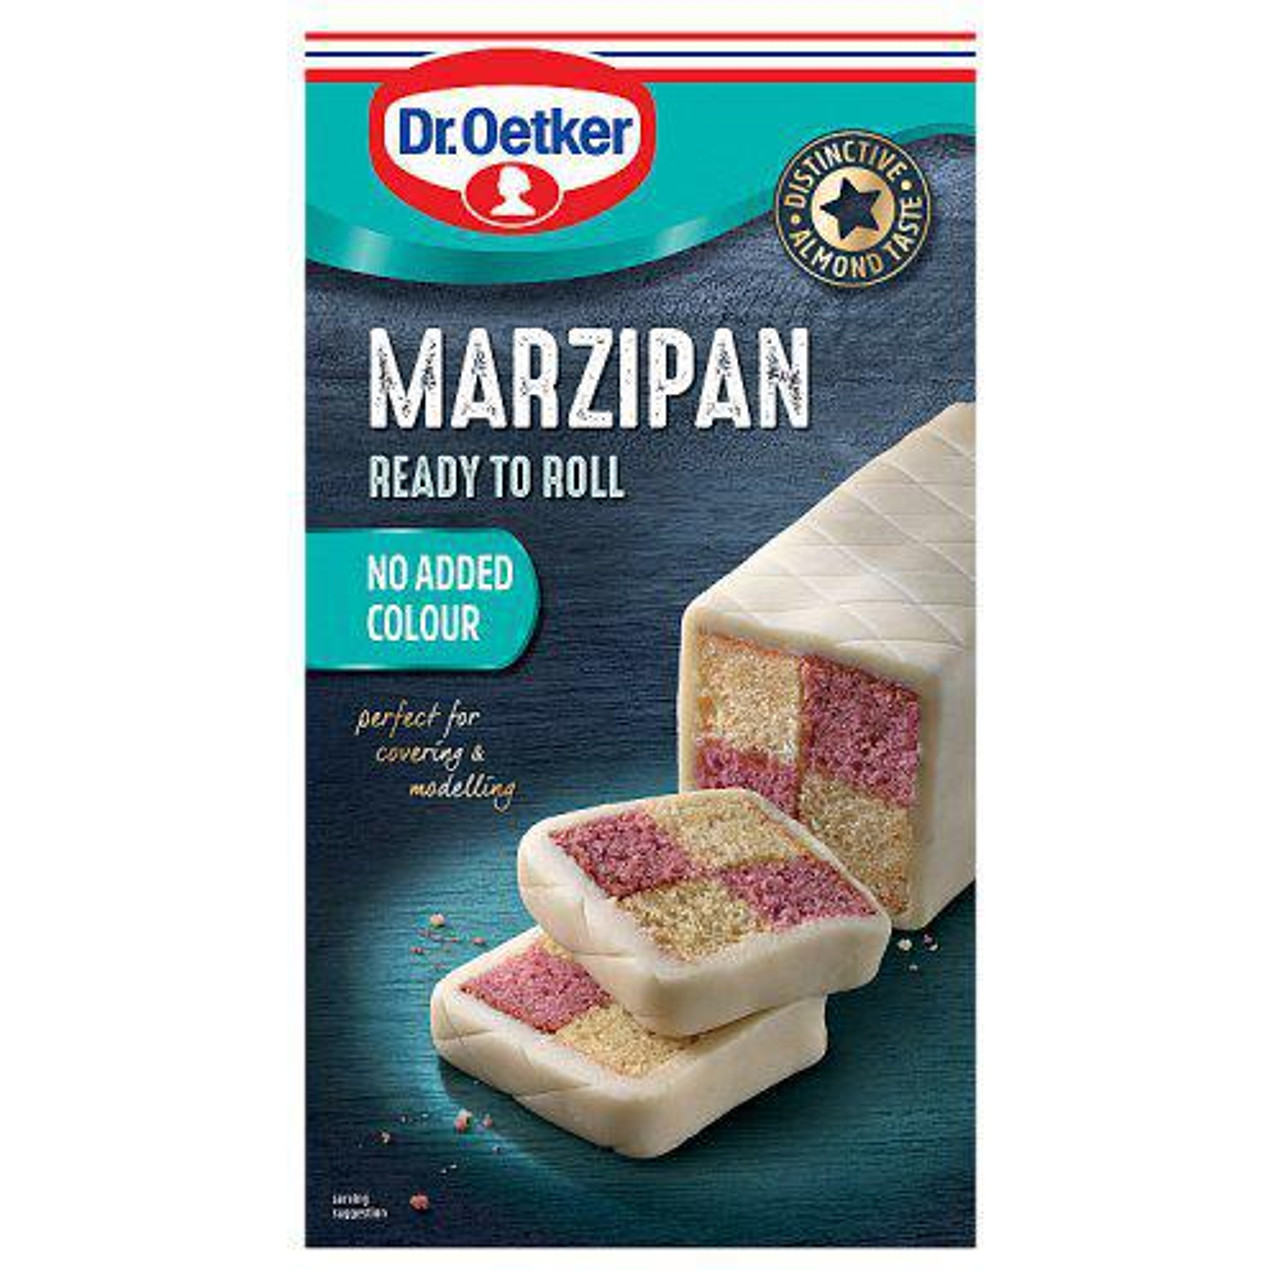 Dr. Oetker - Marzipan Ready to Roll, 1lb